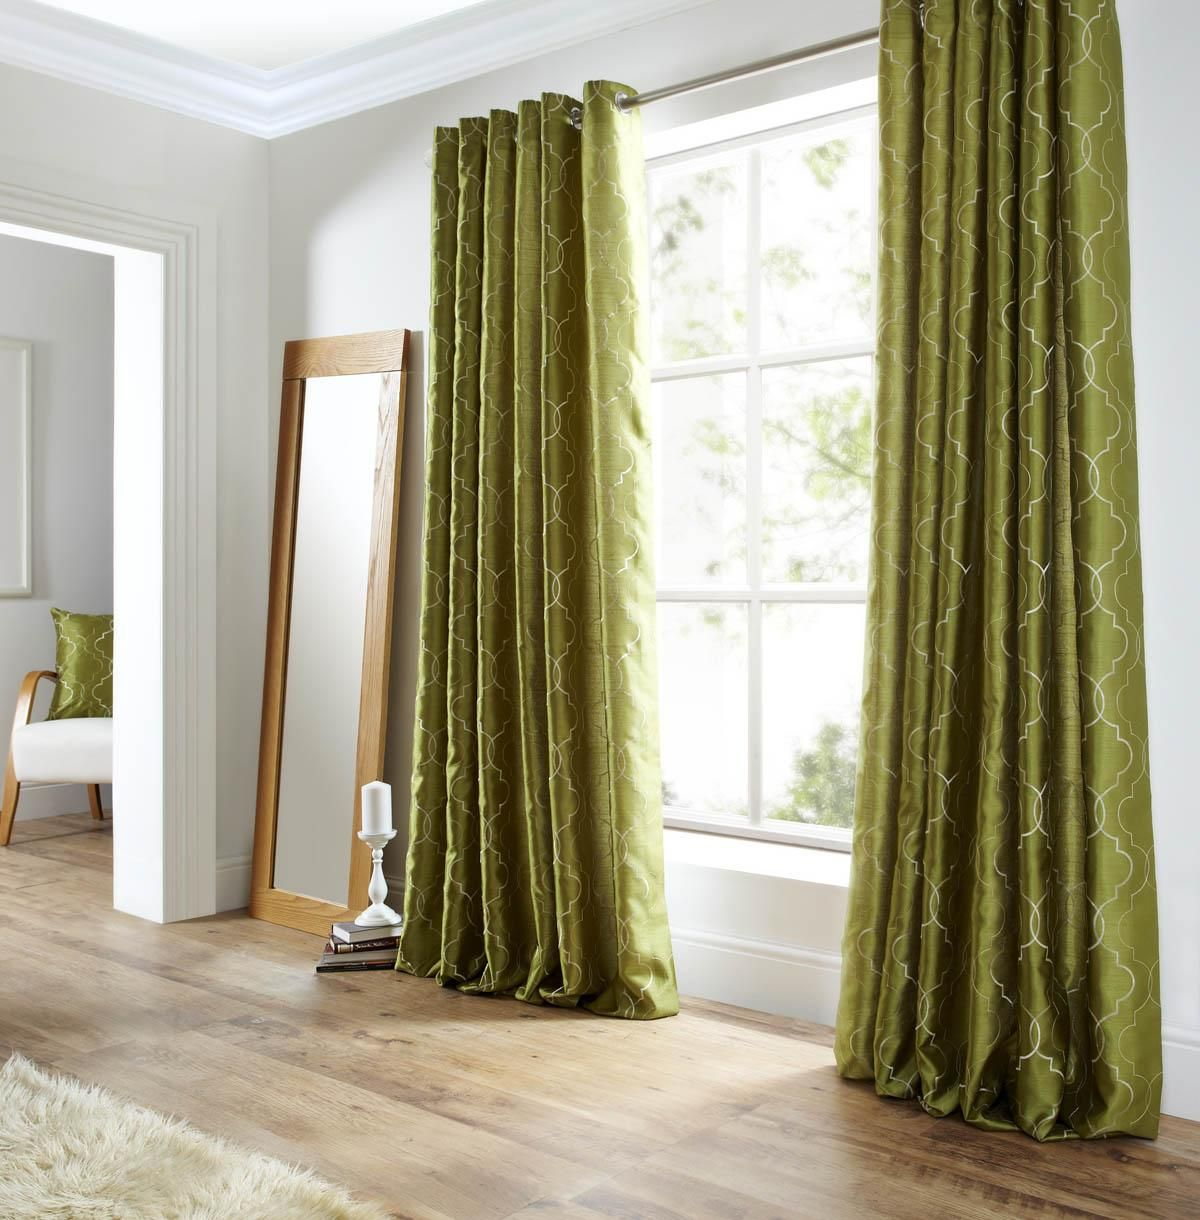 Lemon Green Curtains Images Of Cream Colour Walls With Lemon Green Curtains Rock Cafe